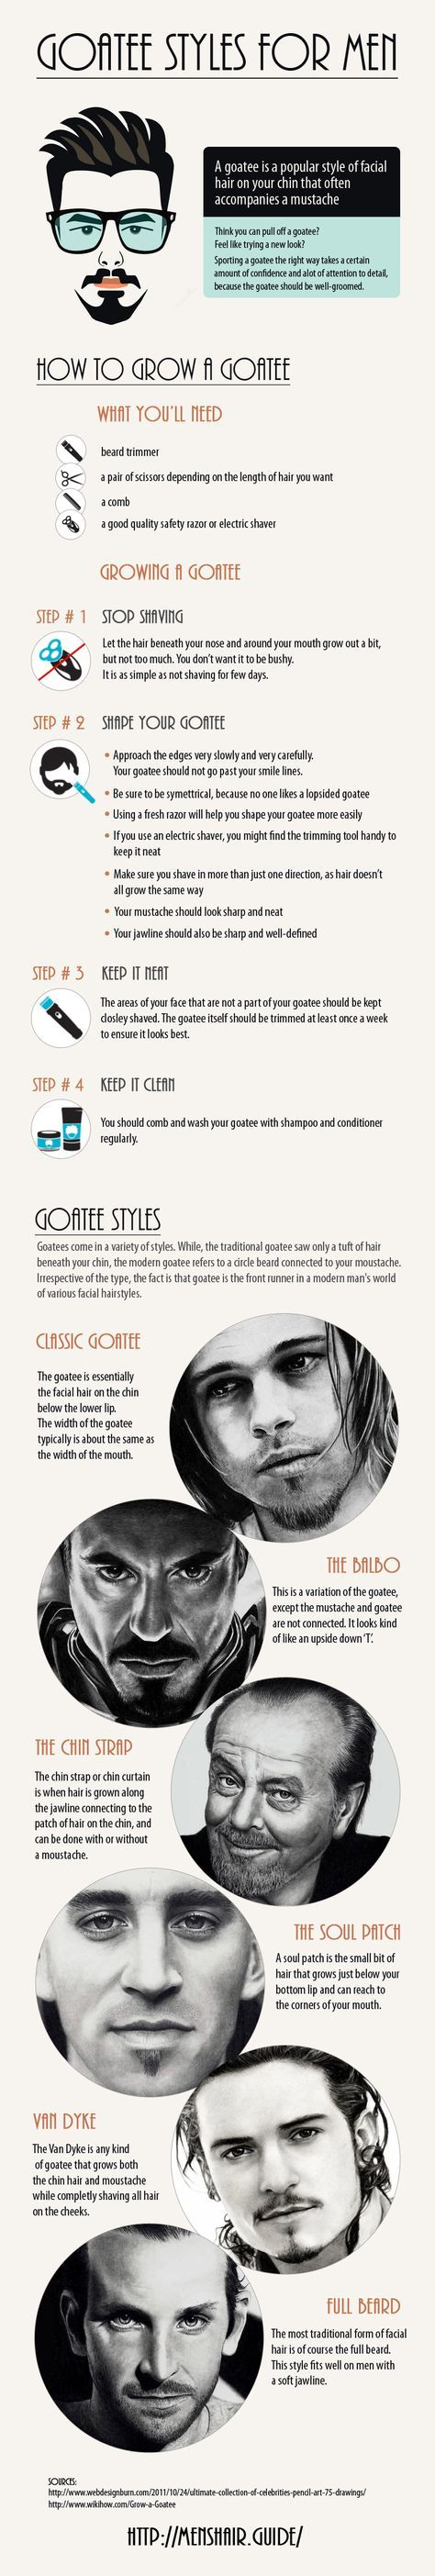 How to shape a goatee beard - Do you fancy an infographic?  There are a lot of them online, but if you want your own please visit http://www.linfografico.com/prezzi/  Online girano molte infografiche, se ne vuoi realizzare una tutta tua visita http://www.linfografico.com/prezzi/